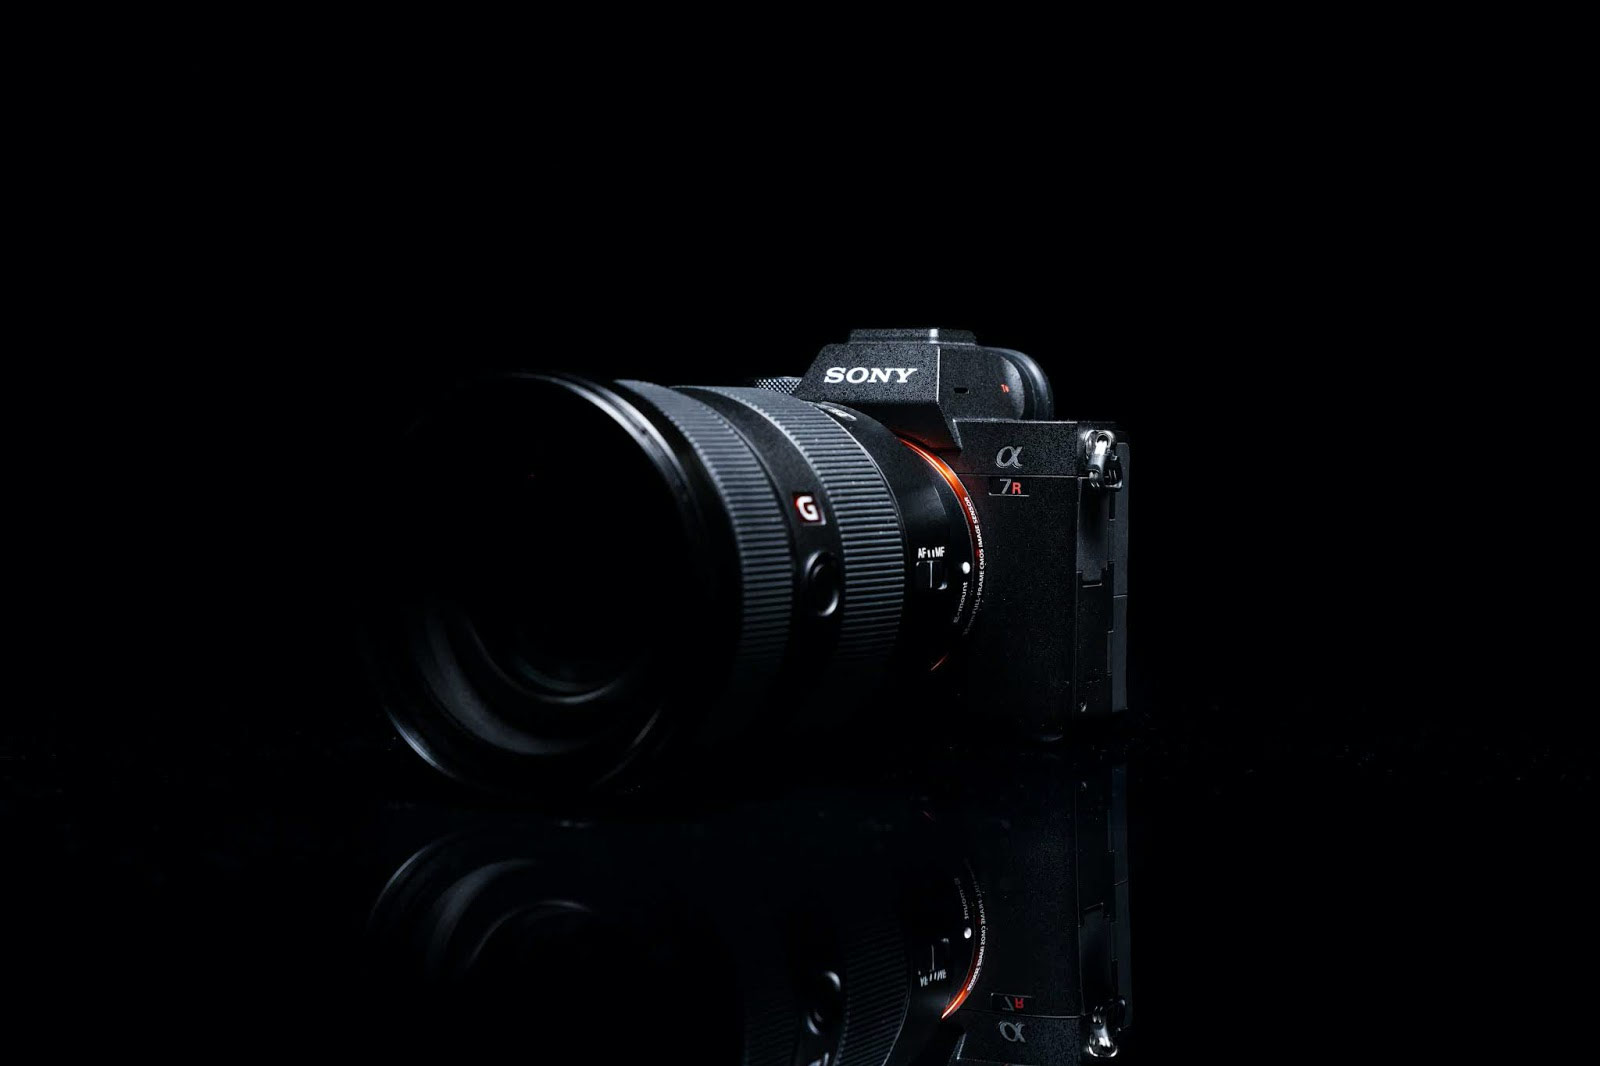 The amazing A7 Riv world highest resolution camera